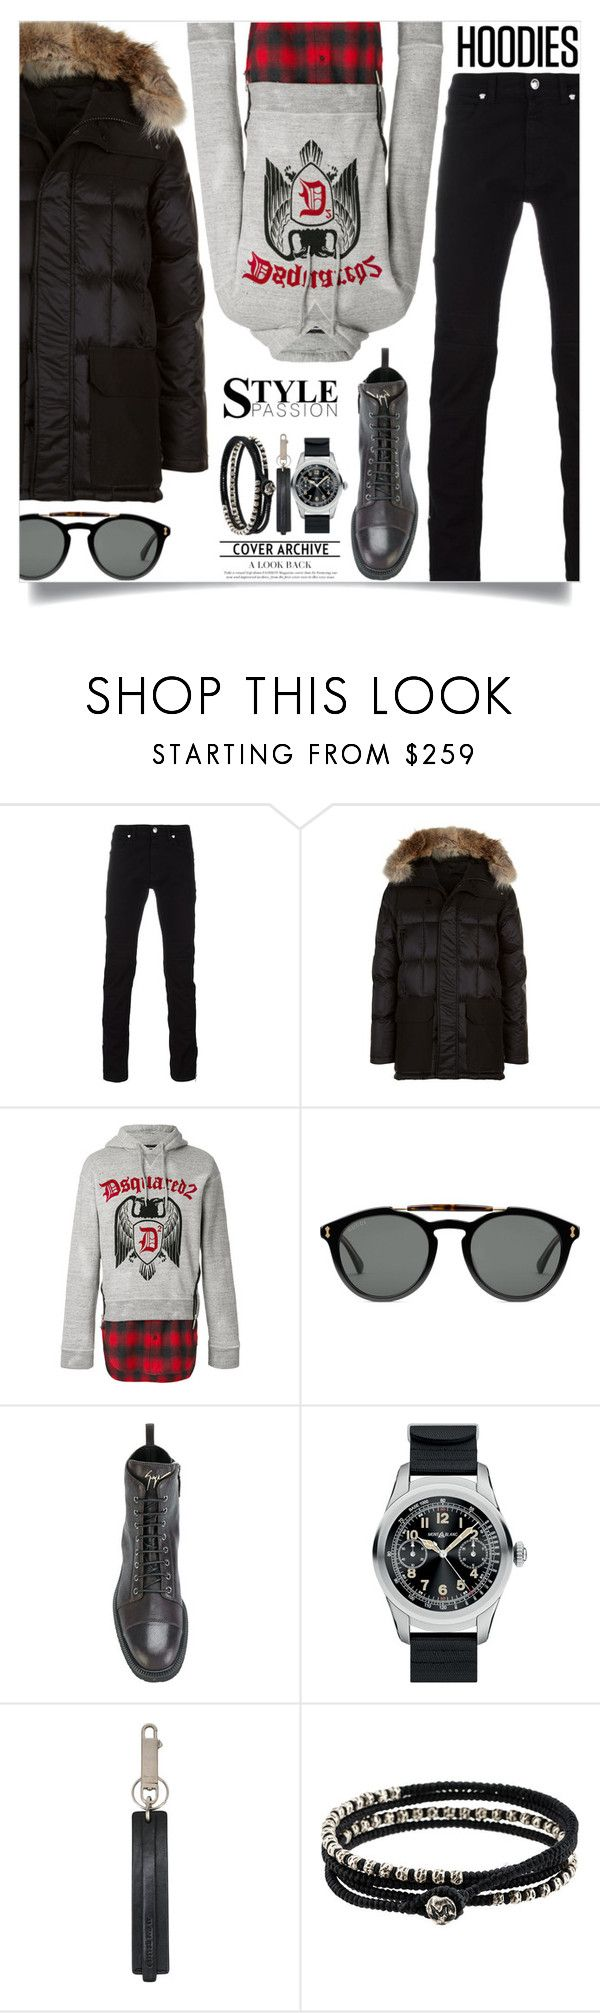 """""""In My Hood: Cozy Hoodies"""" by tina-abbara ❤ liked on Polyvore featuring Versace, Canada Goose, Dsquared2, Gucci, Giuseppe Zanotti, Montblanc, Rick Owens, M. Cohen, men's fashion and menswear"""